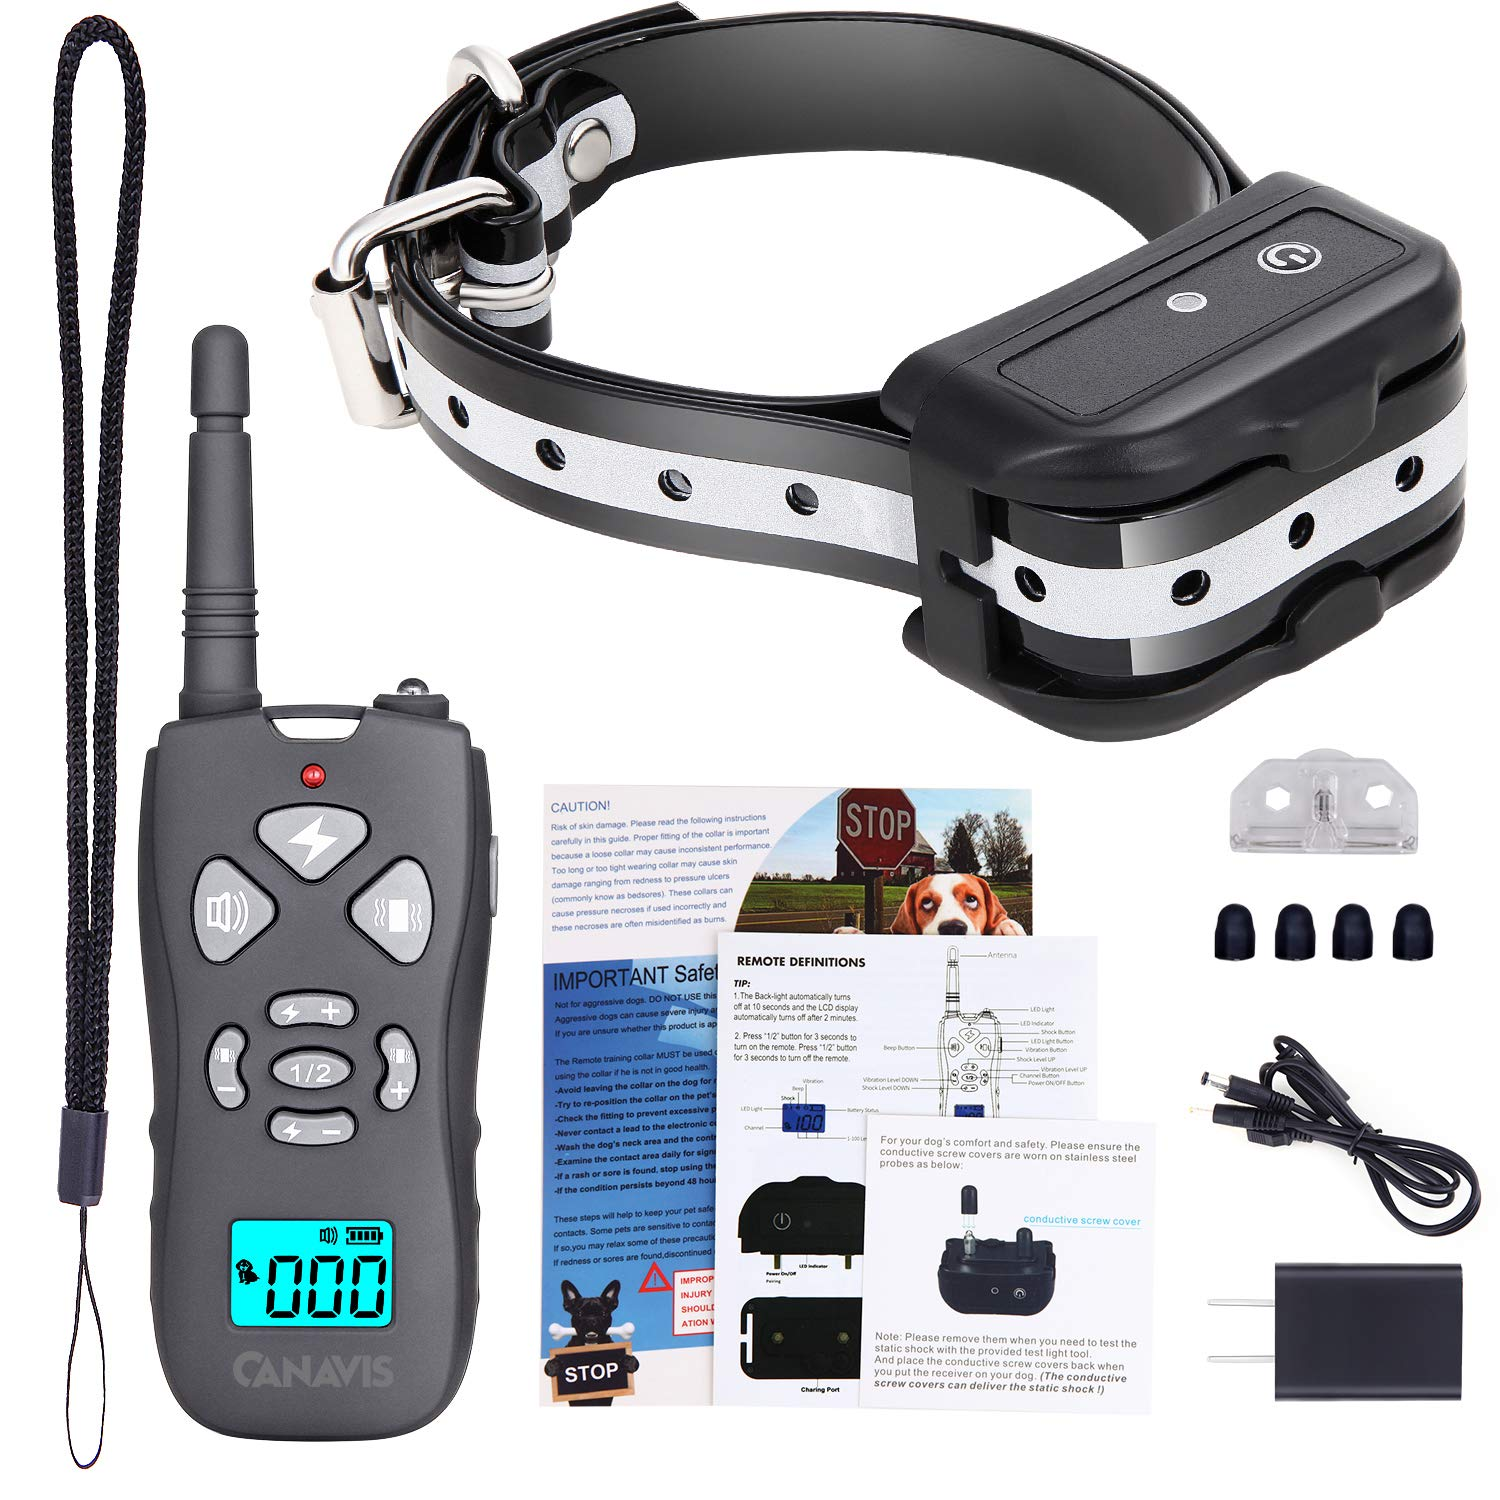 CANAVIS Dog Shock Collar with 1800Ft Remote, Waterproof Dog Training Collar, Rechargeable Electronic Collar with Vibration Tone Shock Modes, Adjustable Collar Strap for Small Medium Large Dog by CANAVIS (Image #7)